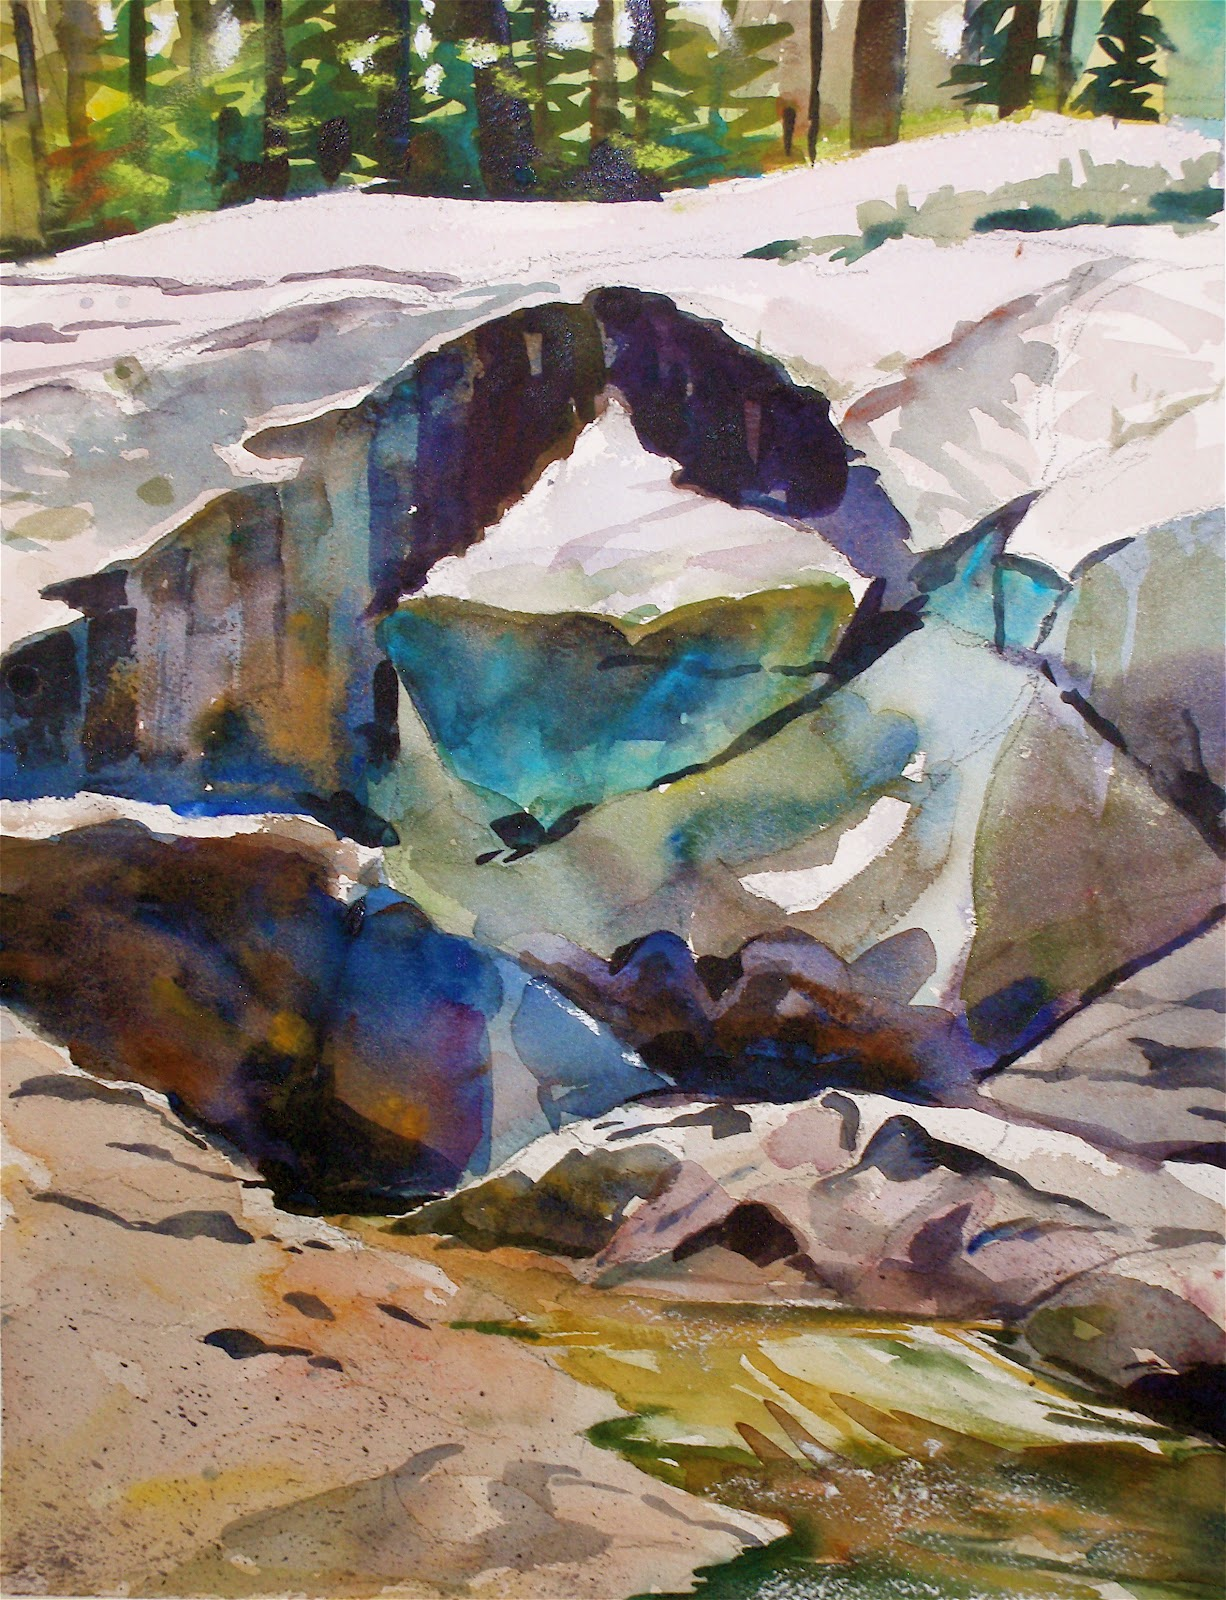 David Lobenberg: Plein Air Watercolor Painting and Canine